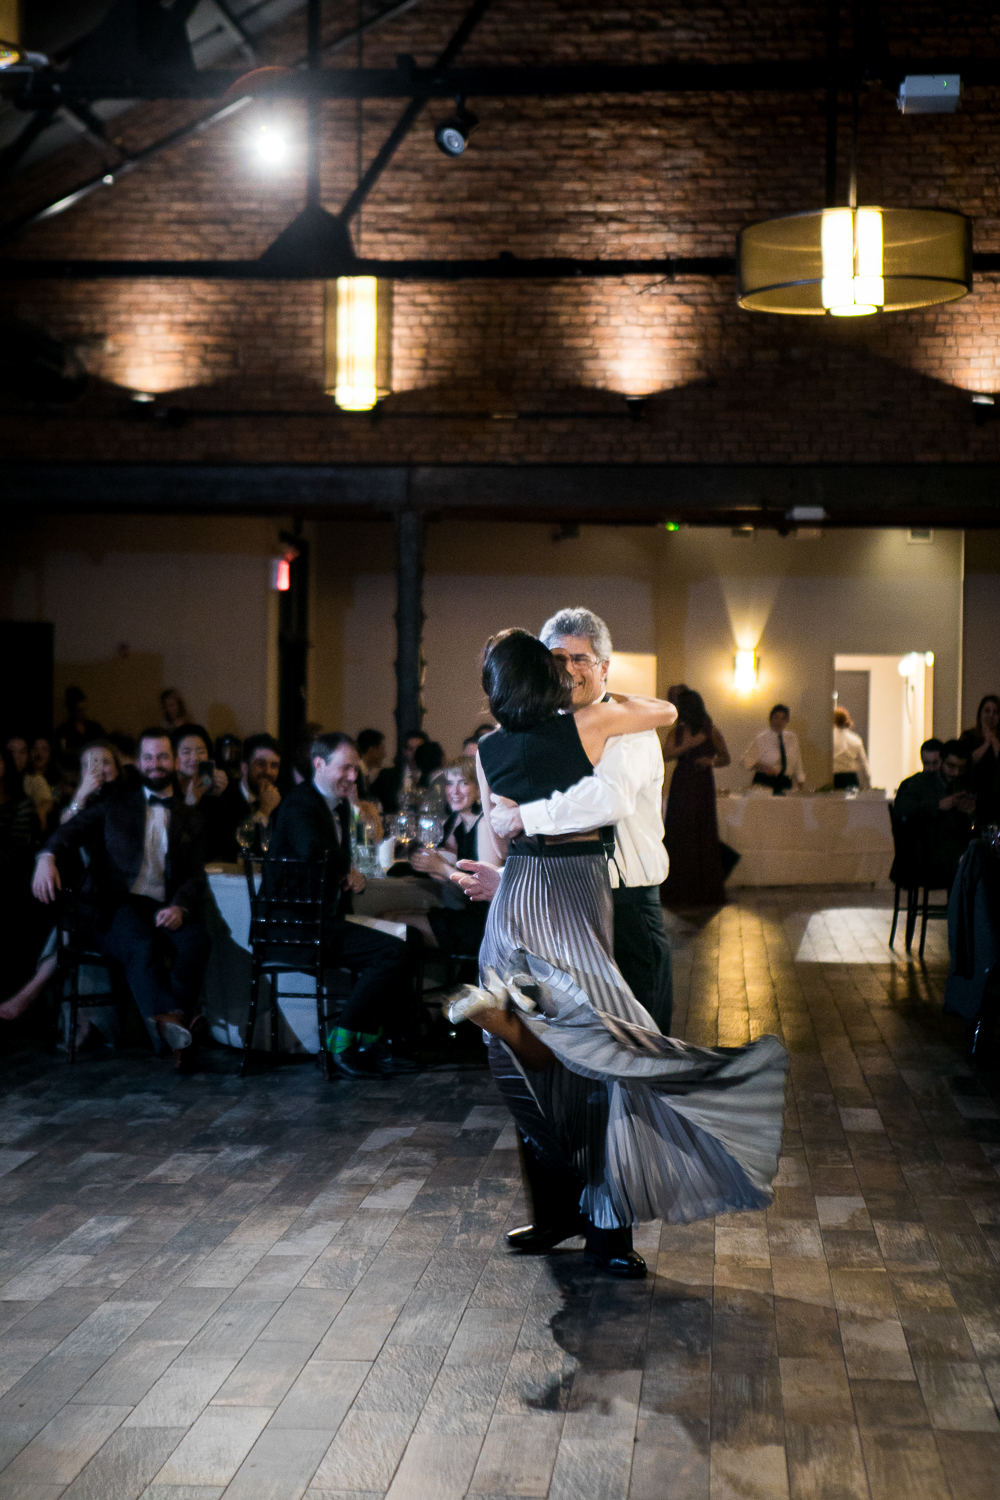 Dancing at a Brooklyn wedding reception | 26 Bridge Wedding Photos | Lesbian Brooklyn Wedding | Kristin and Marisa's Wedding